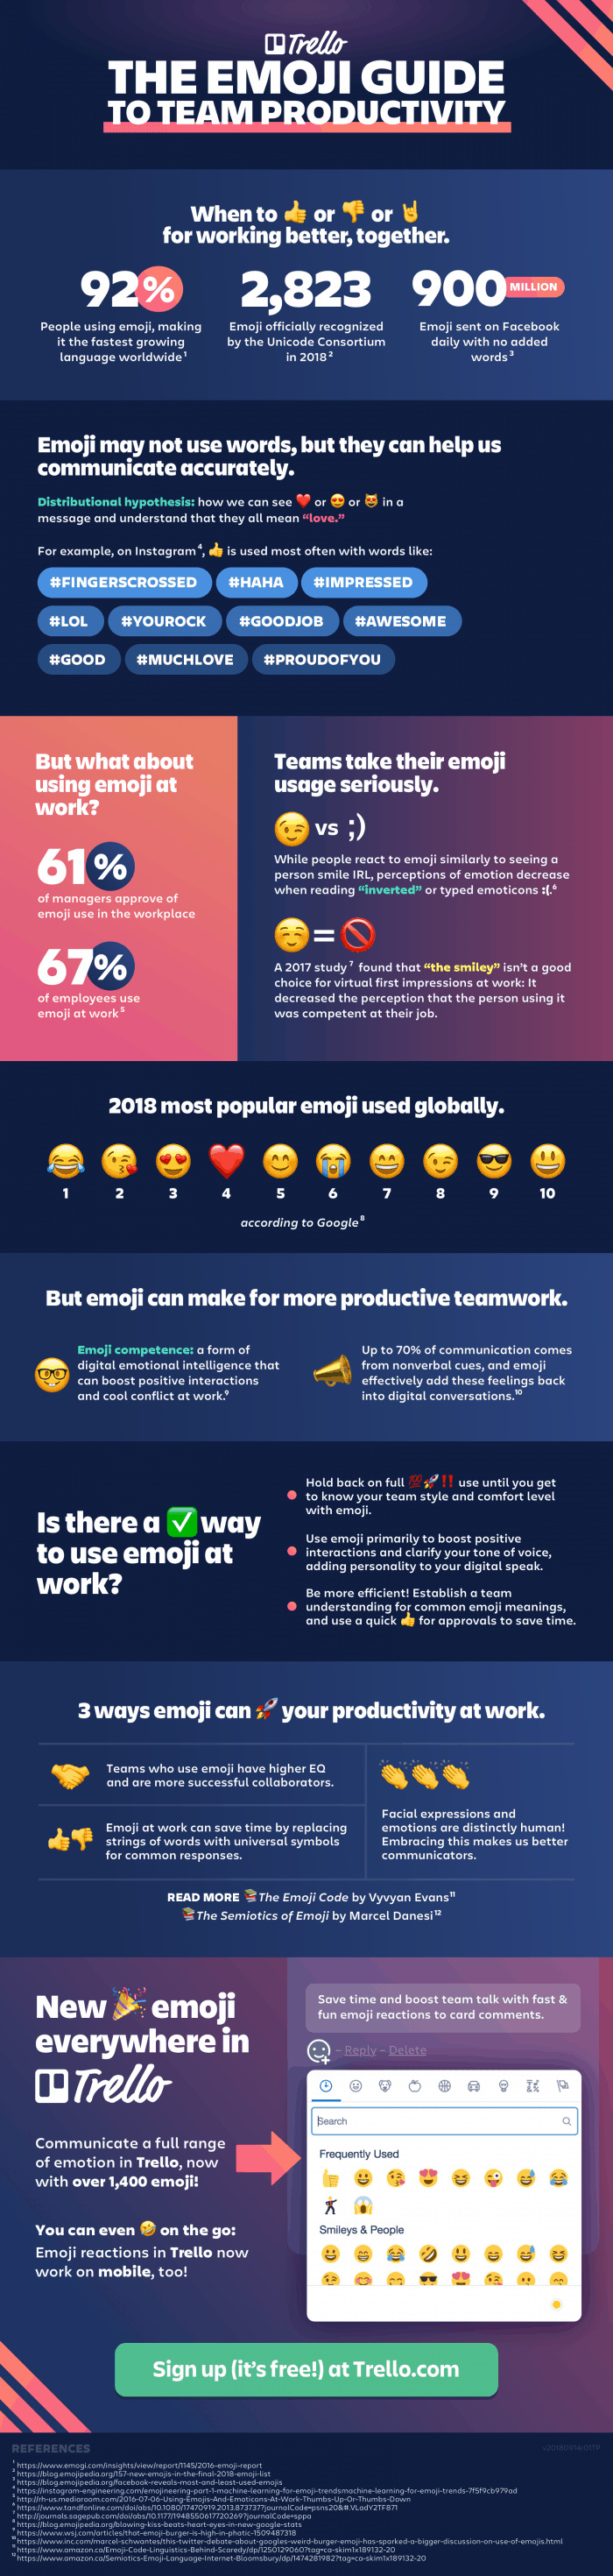 emojis to boost productivity infographic